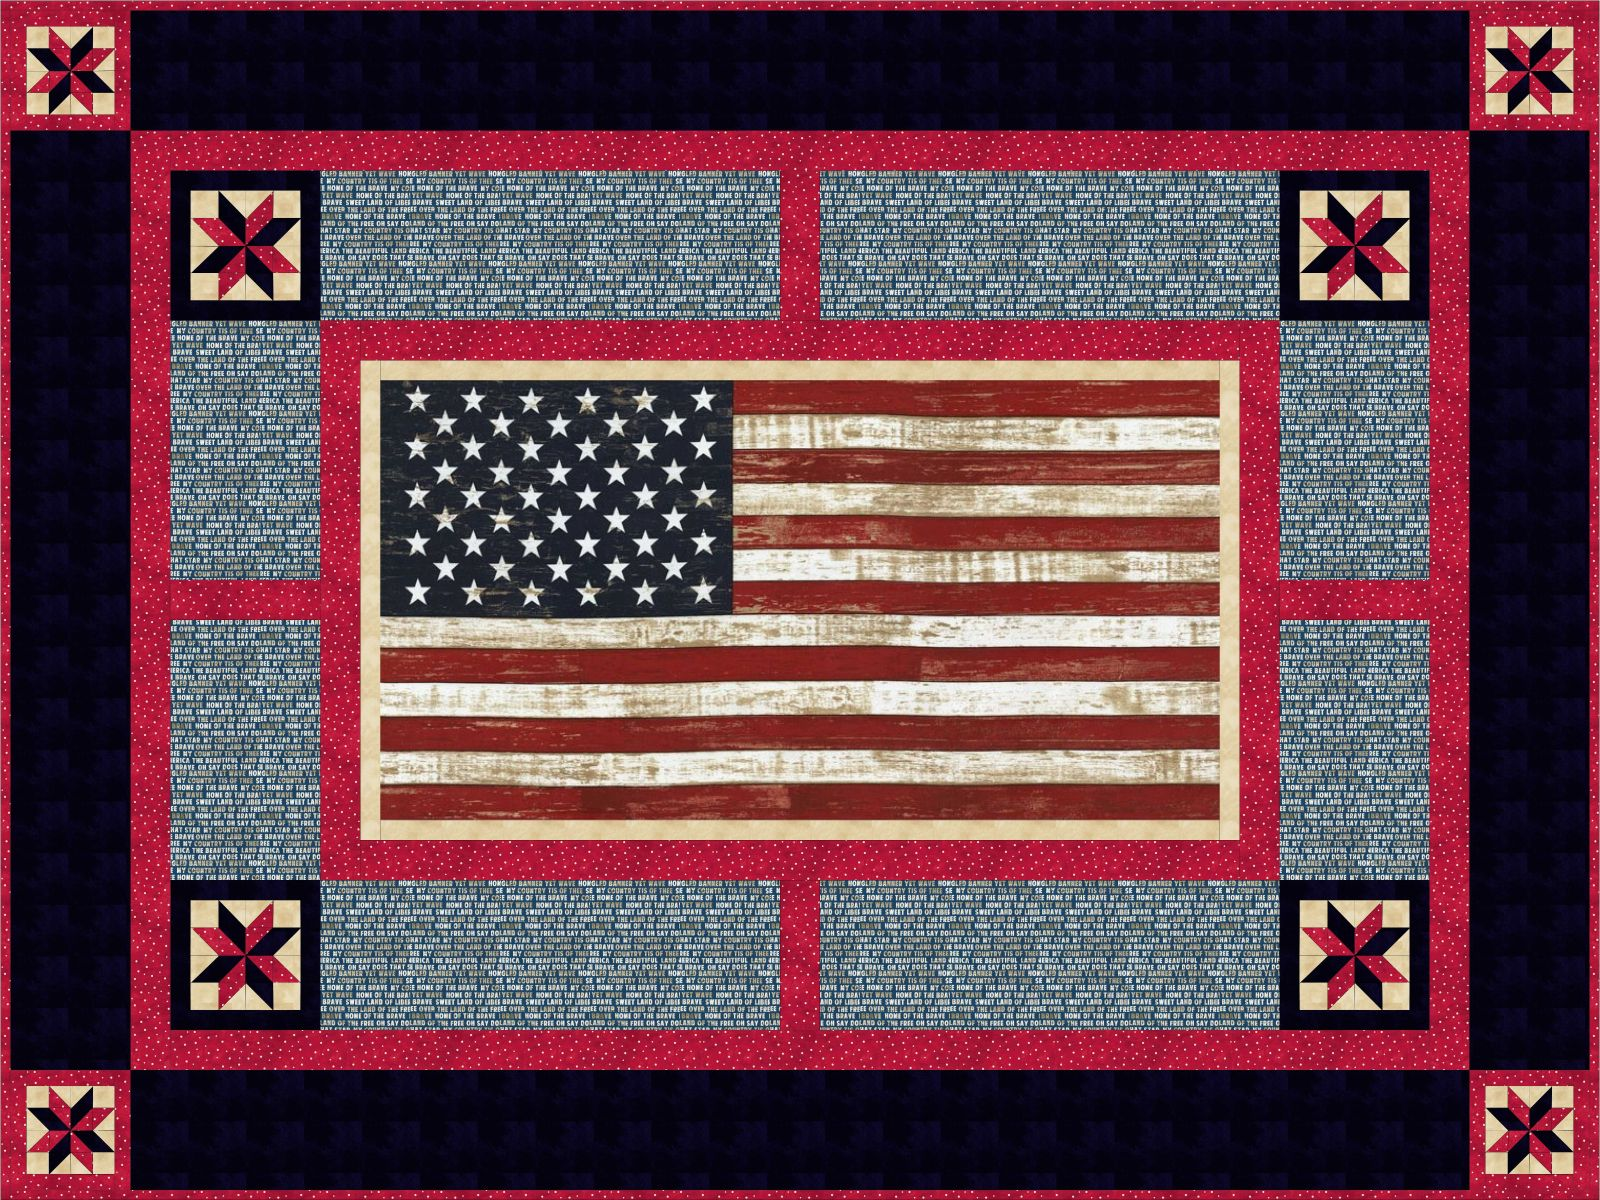 """American Pride"" Free Quilts of Valor Pattern designed by Debbie Chambers from the Quilts of Valor Foundation"